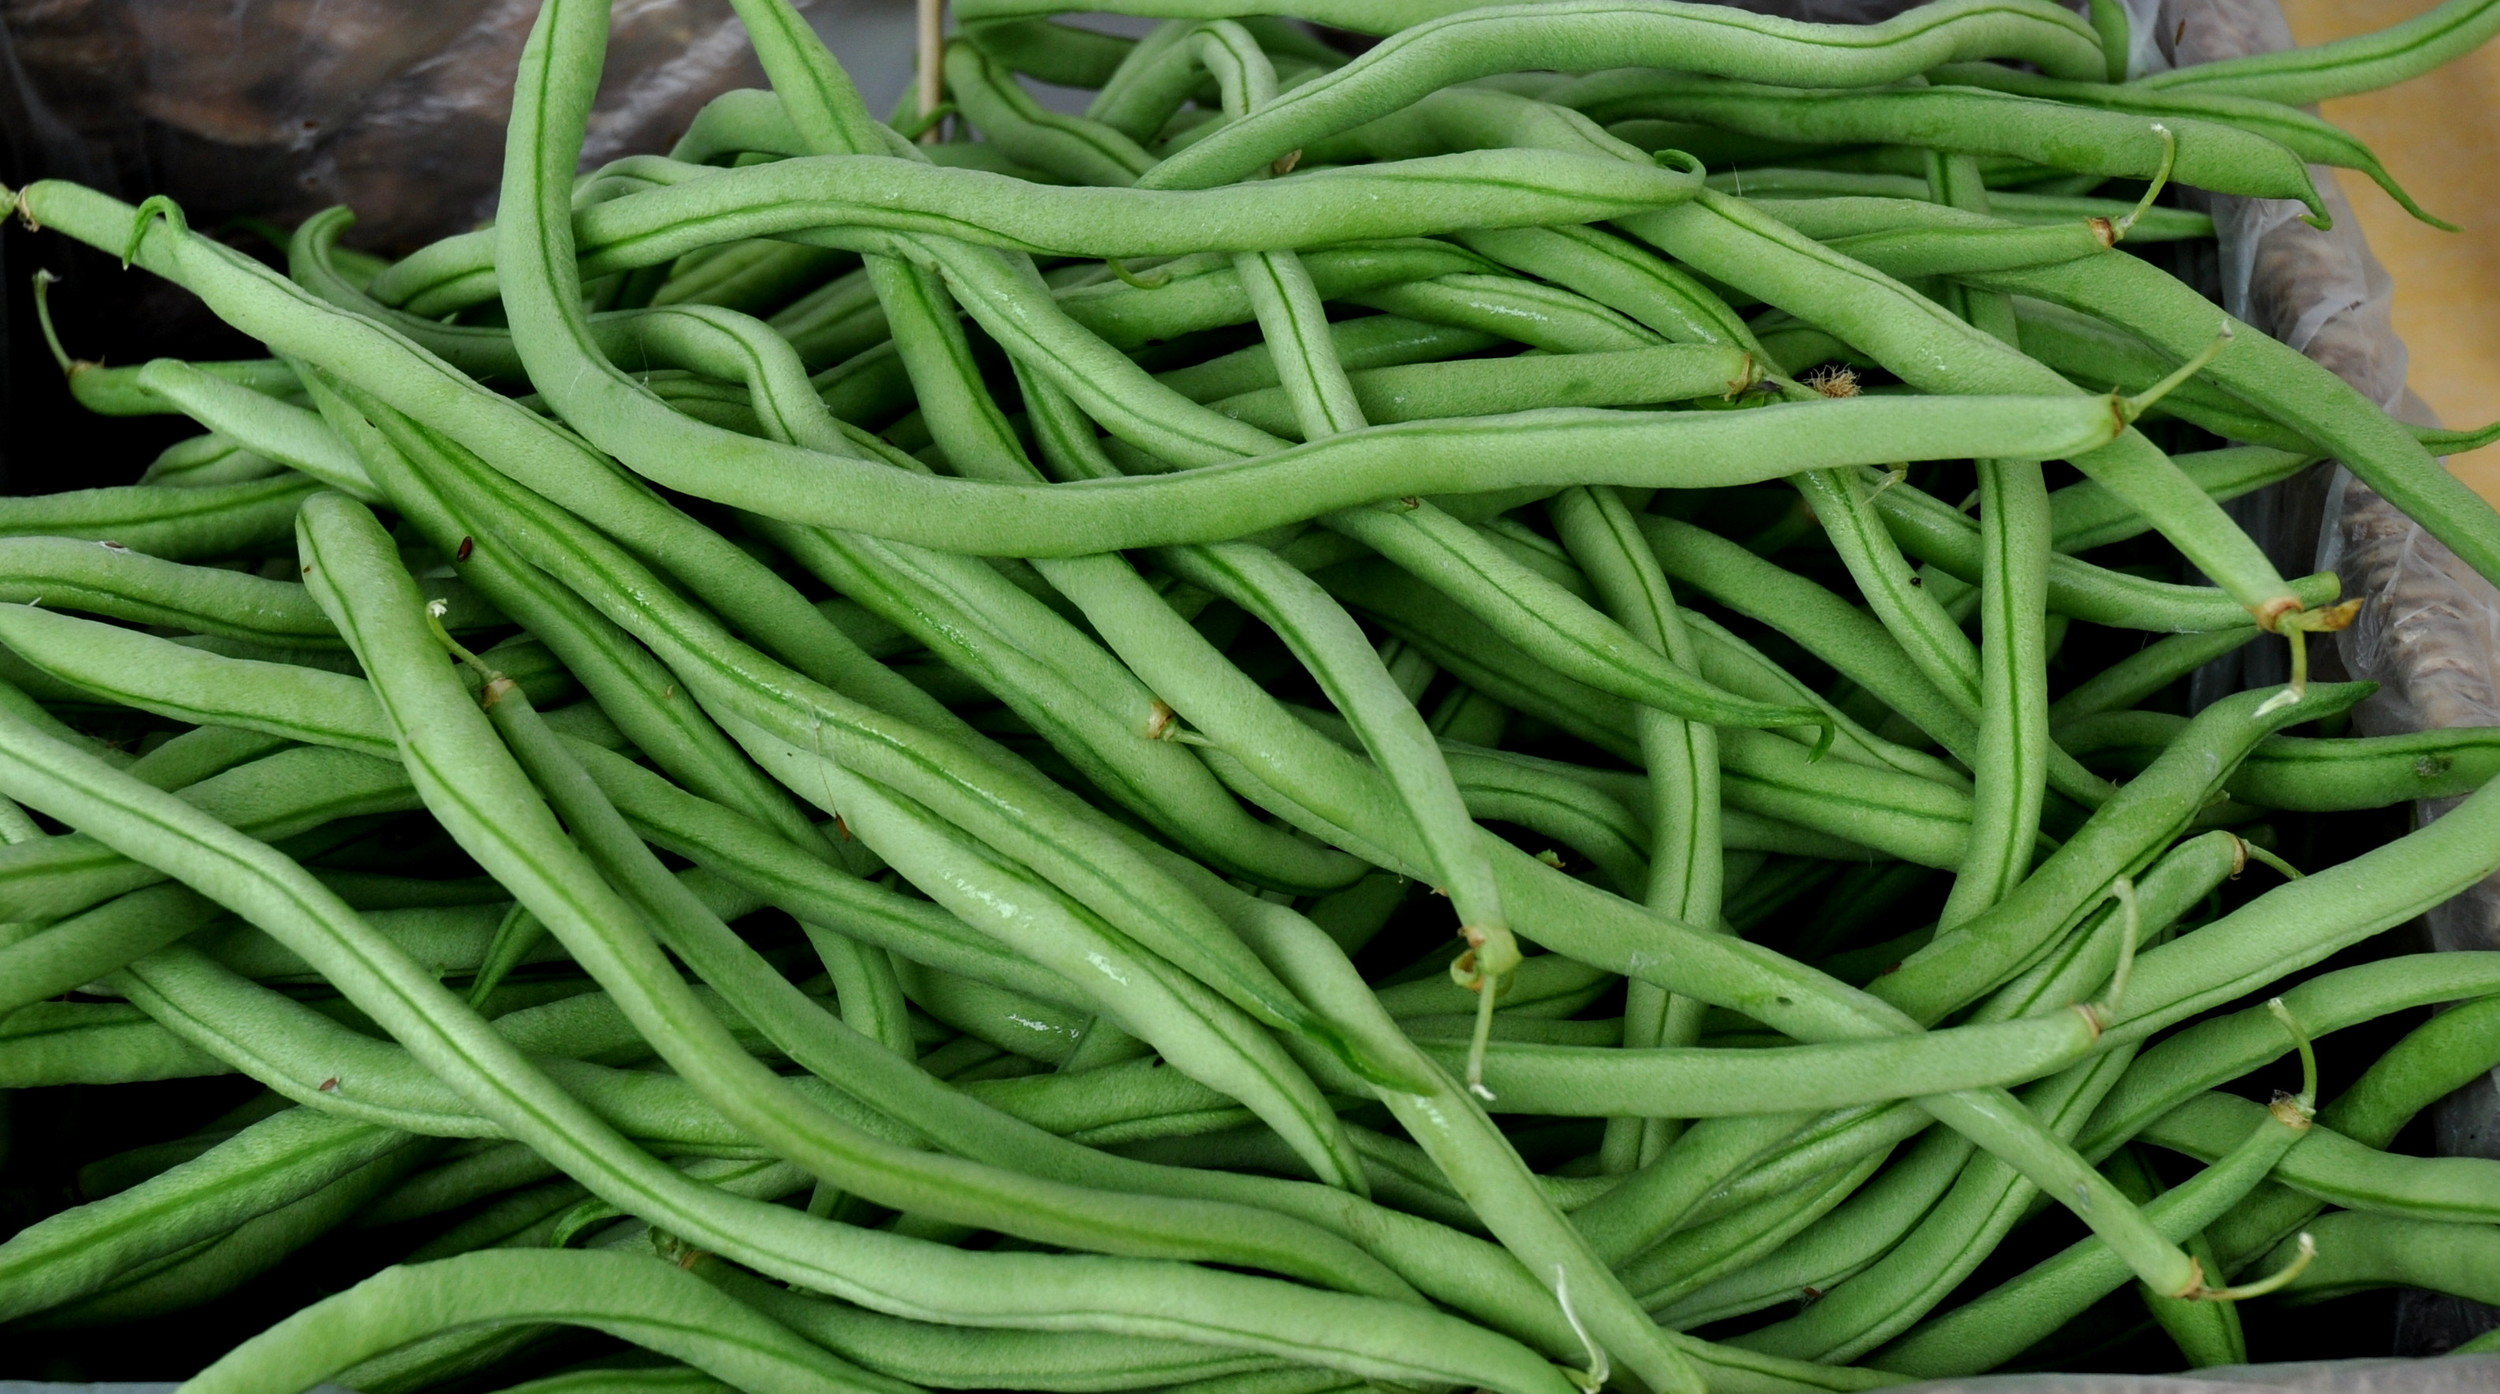 Fortex green beans from City Grown Farm. Photo copyright 2013 by Zachary D. Lyons.